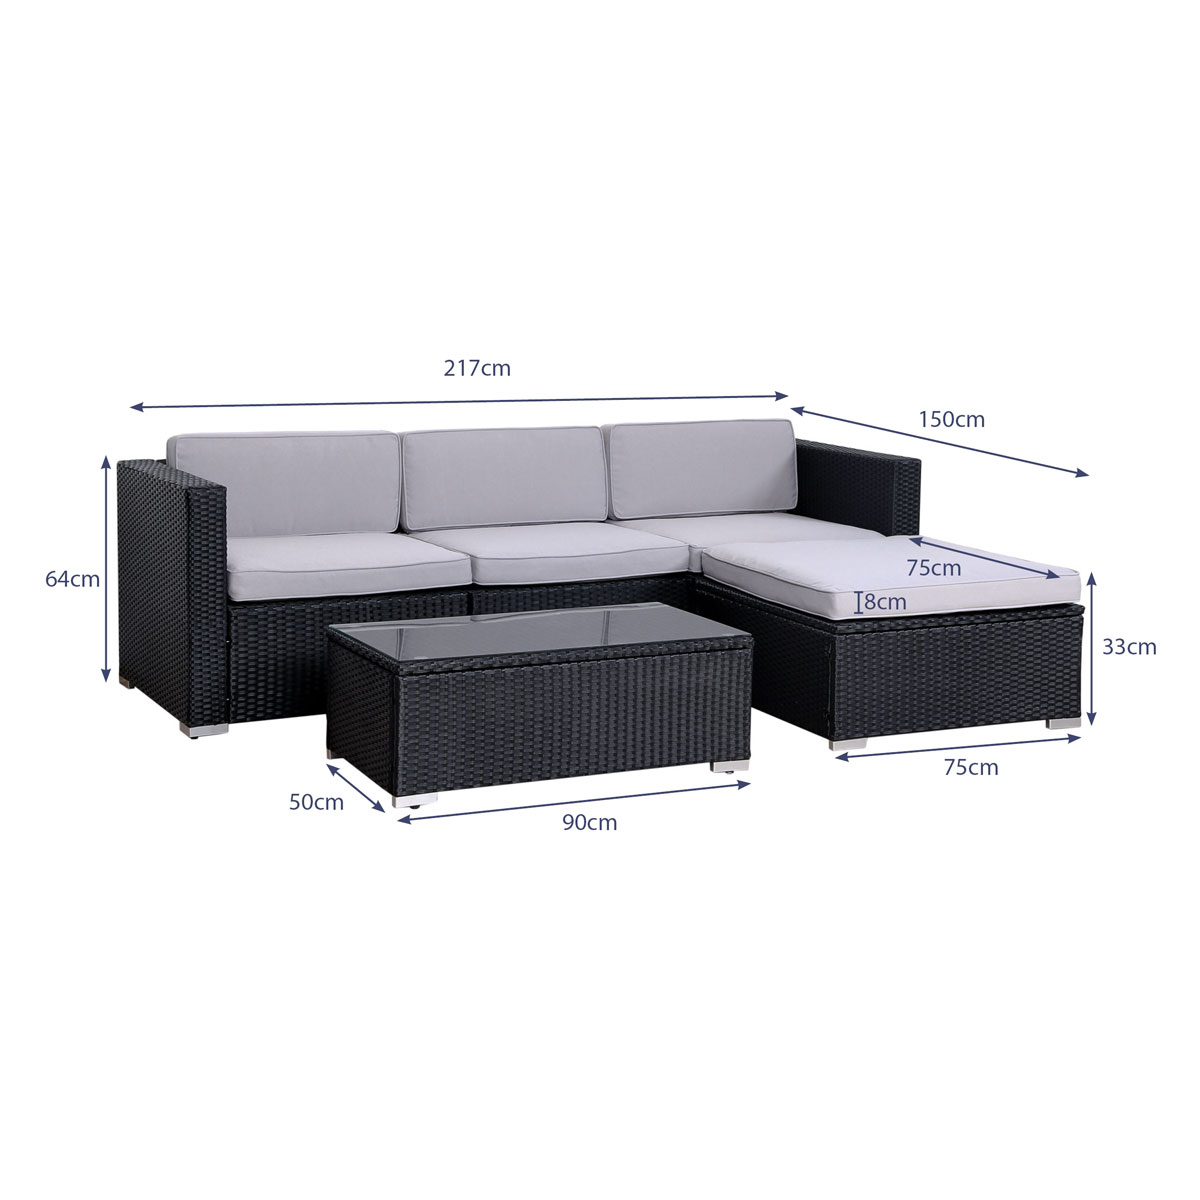 svita polyrattan lounge gartenm bel set sofa couch garnitur rattan truhe box ebay. Black Bedroom Furniture Sets. Home Design Ideas